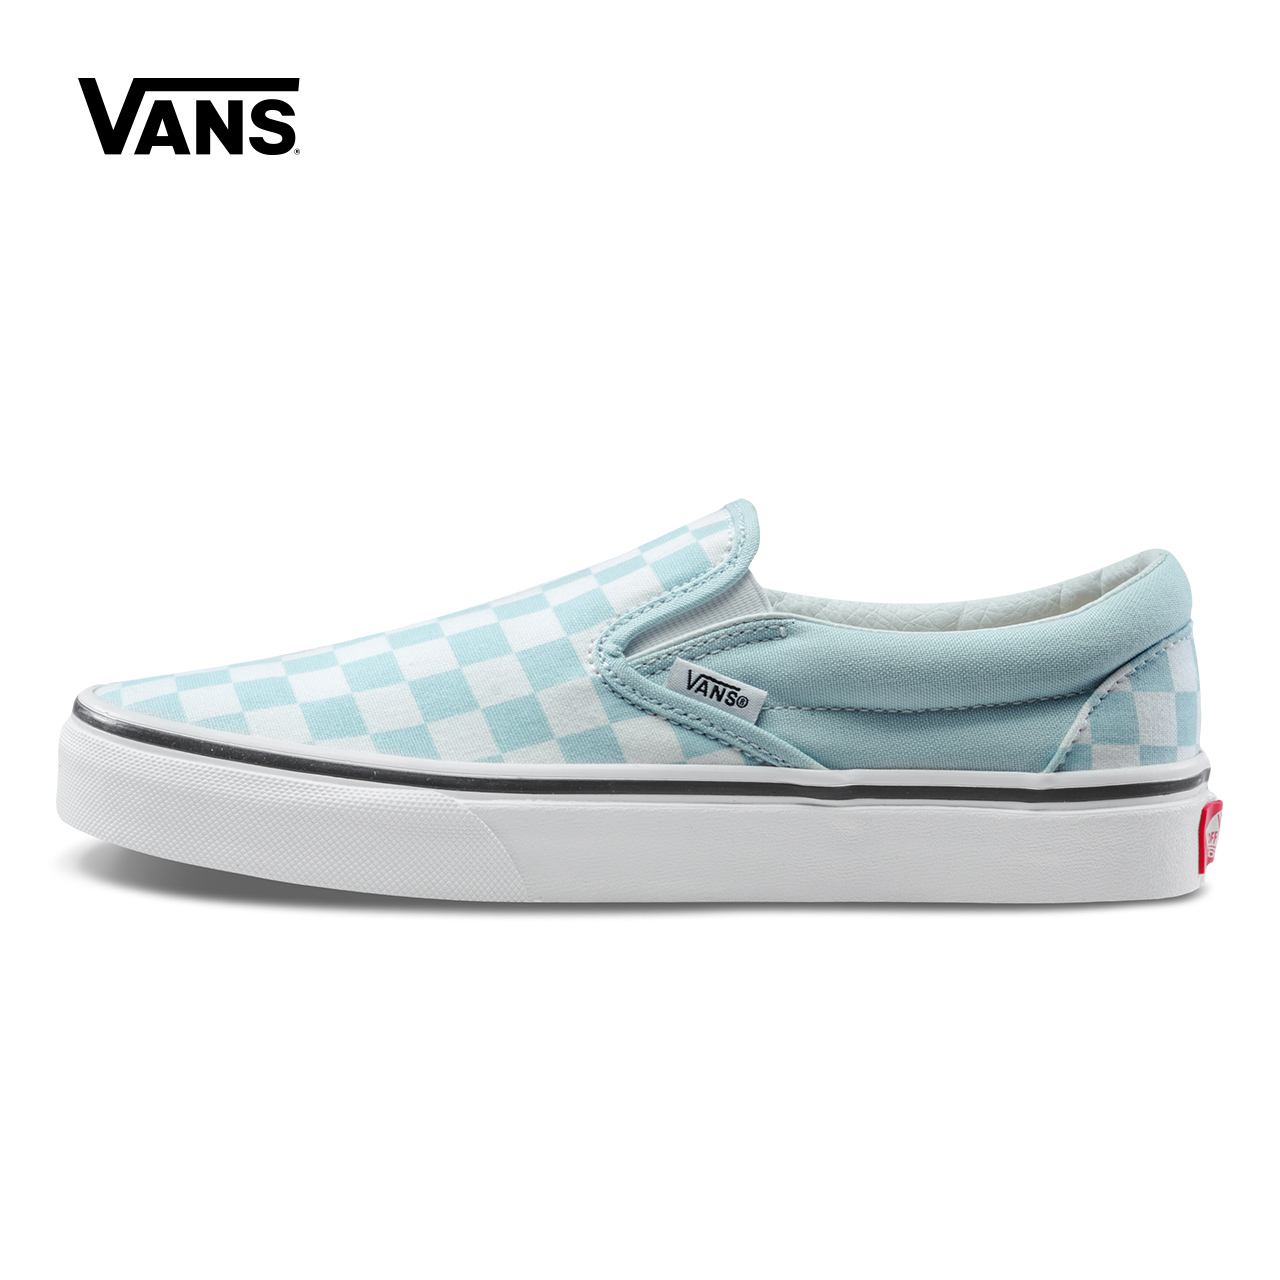 Blue Grid Vans Sneakers Women Slip-On Low-top Skateboarding Shoes Sneakers Comfortable Classic Canvas Shoes VN0A38F7QCK/QCL suede low top slip on sneakers